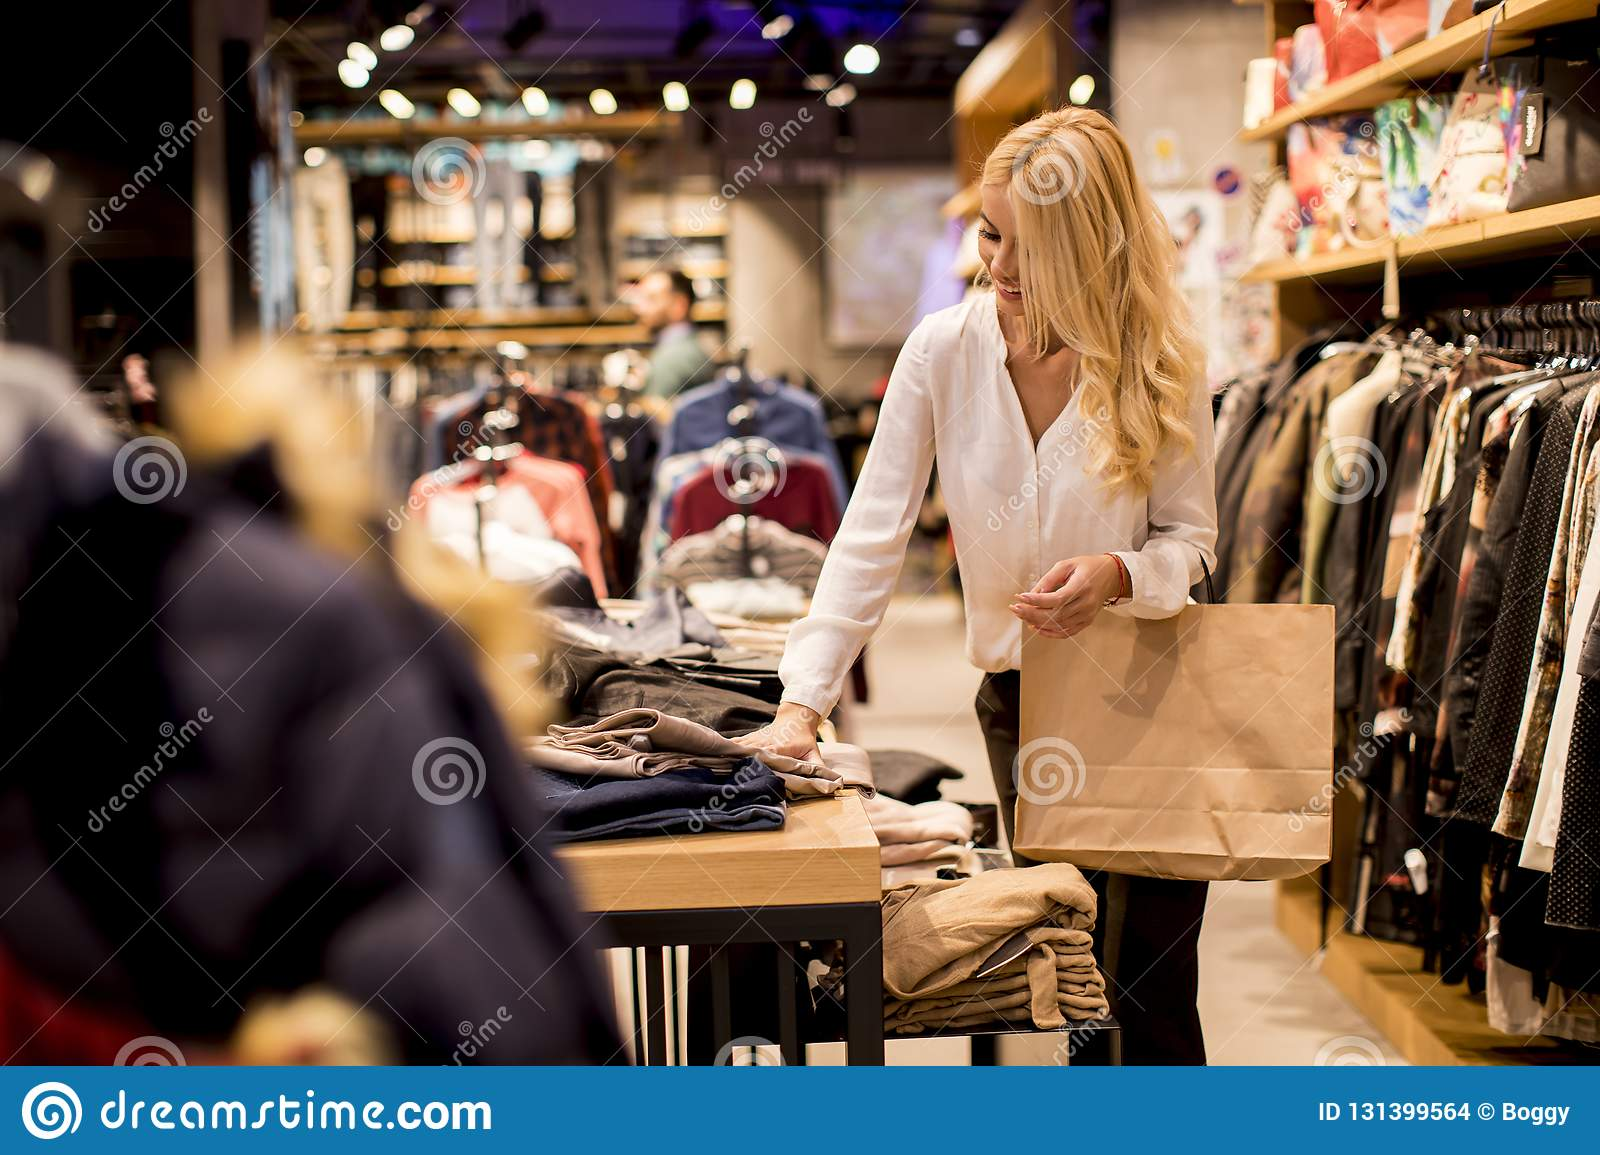 d4011376c3 Beautiful Young Woman With Shopping Bags Standing At Clothing Store ...